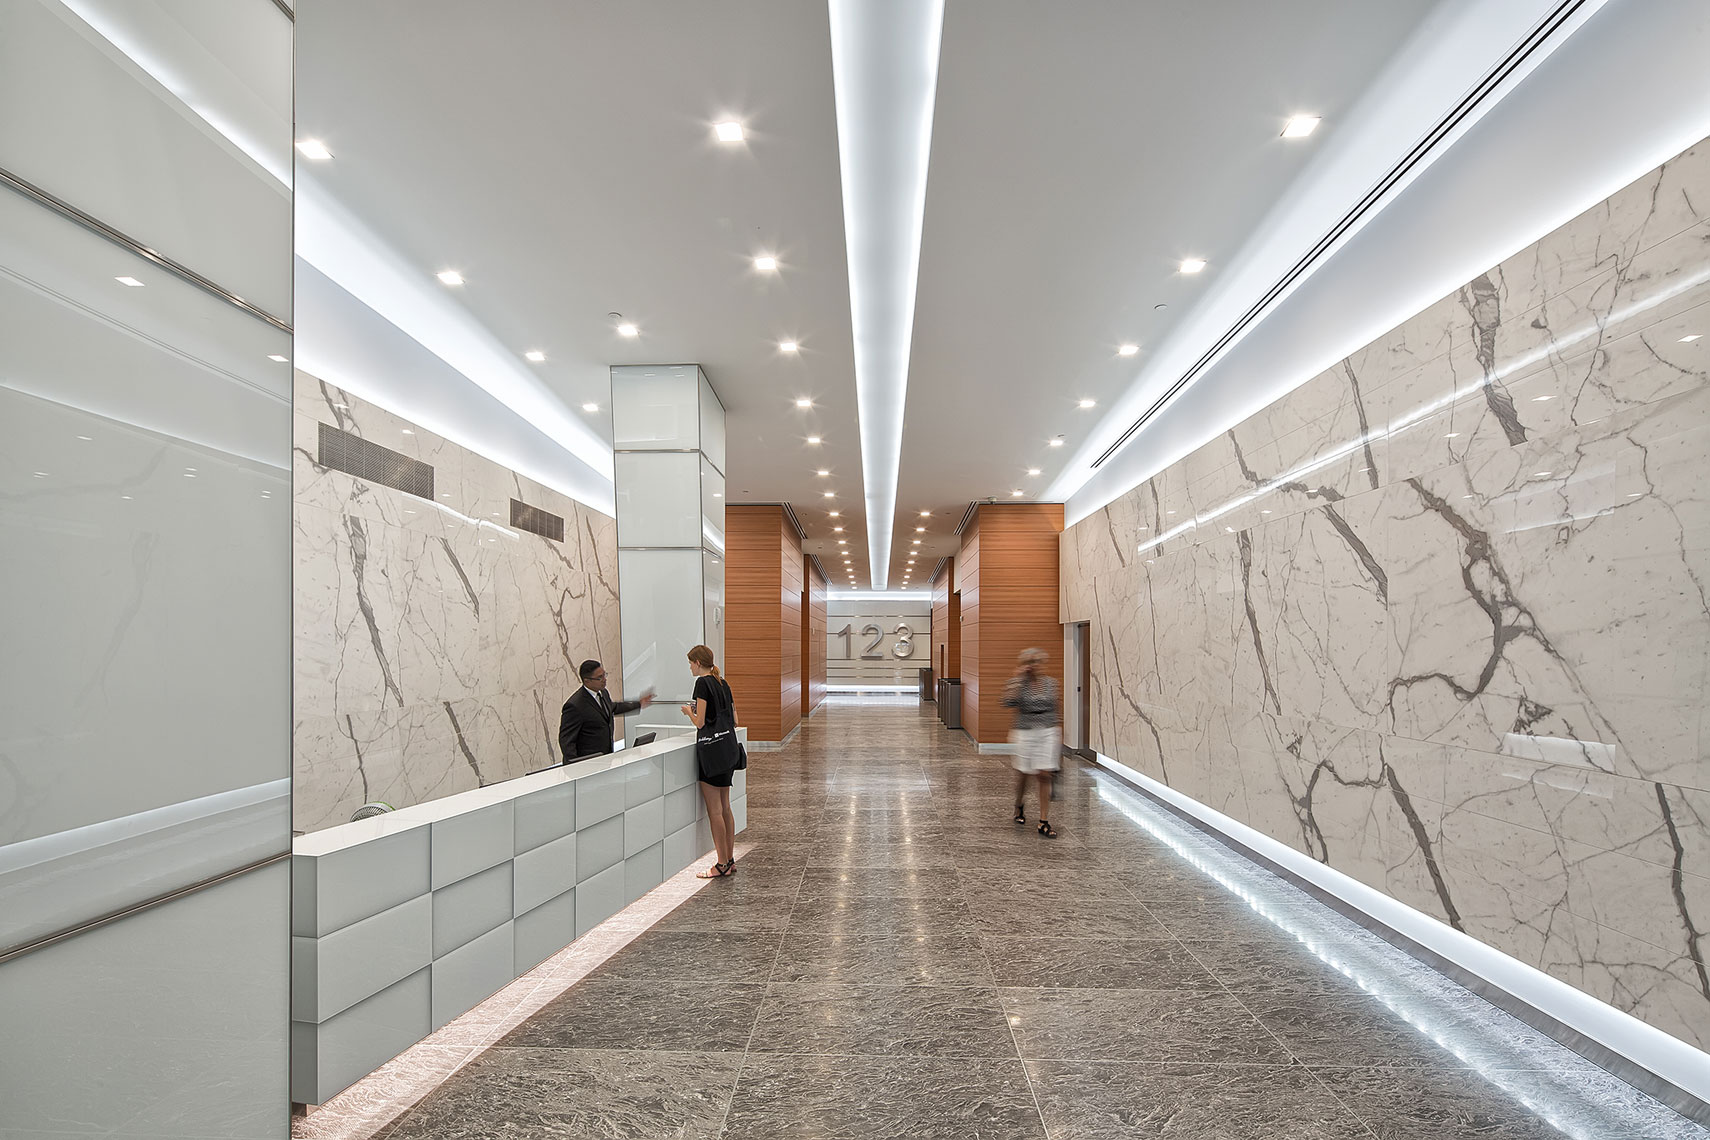 The stone work is stunning in this modern lobby. Architectural photographer NY.